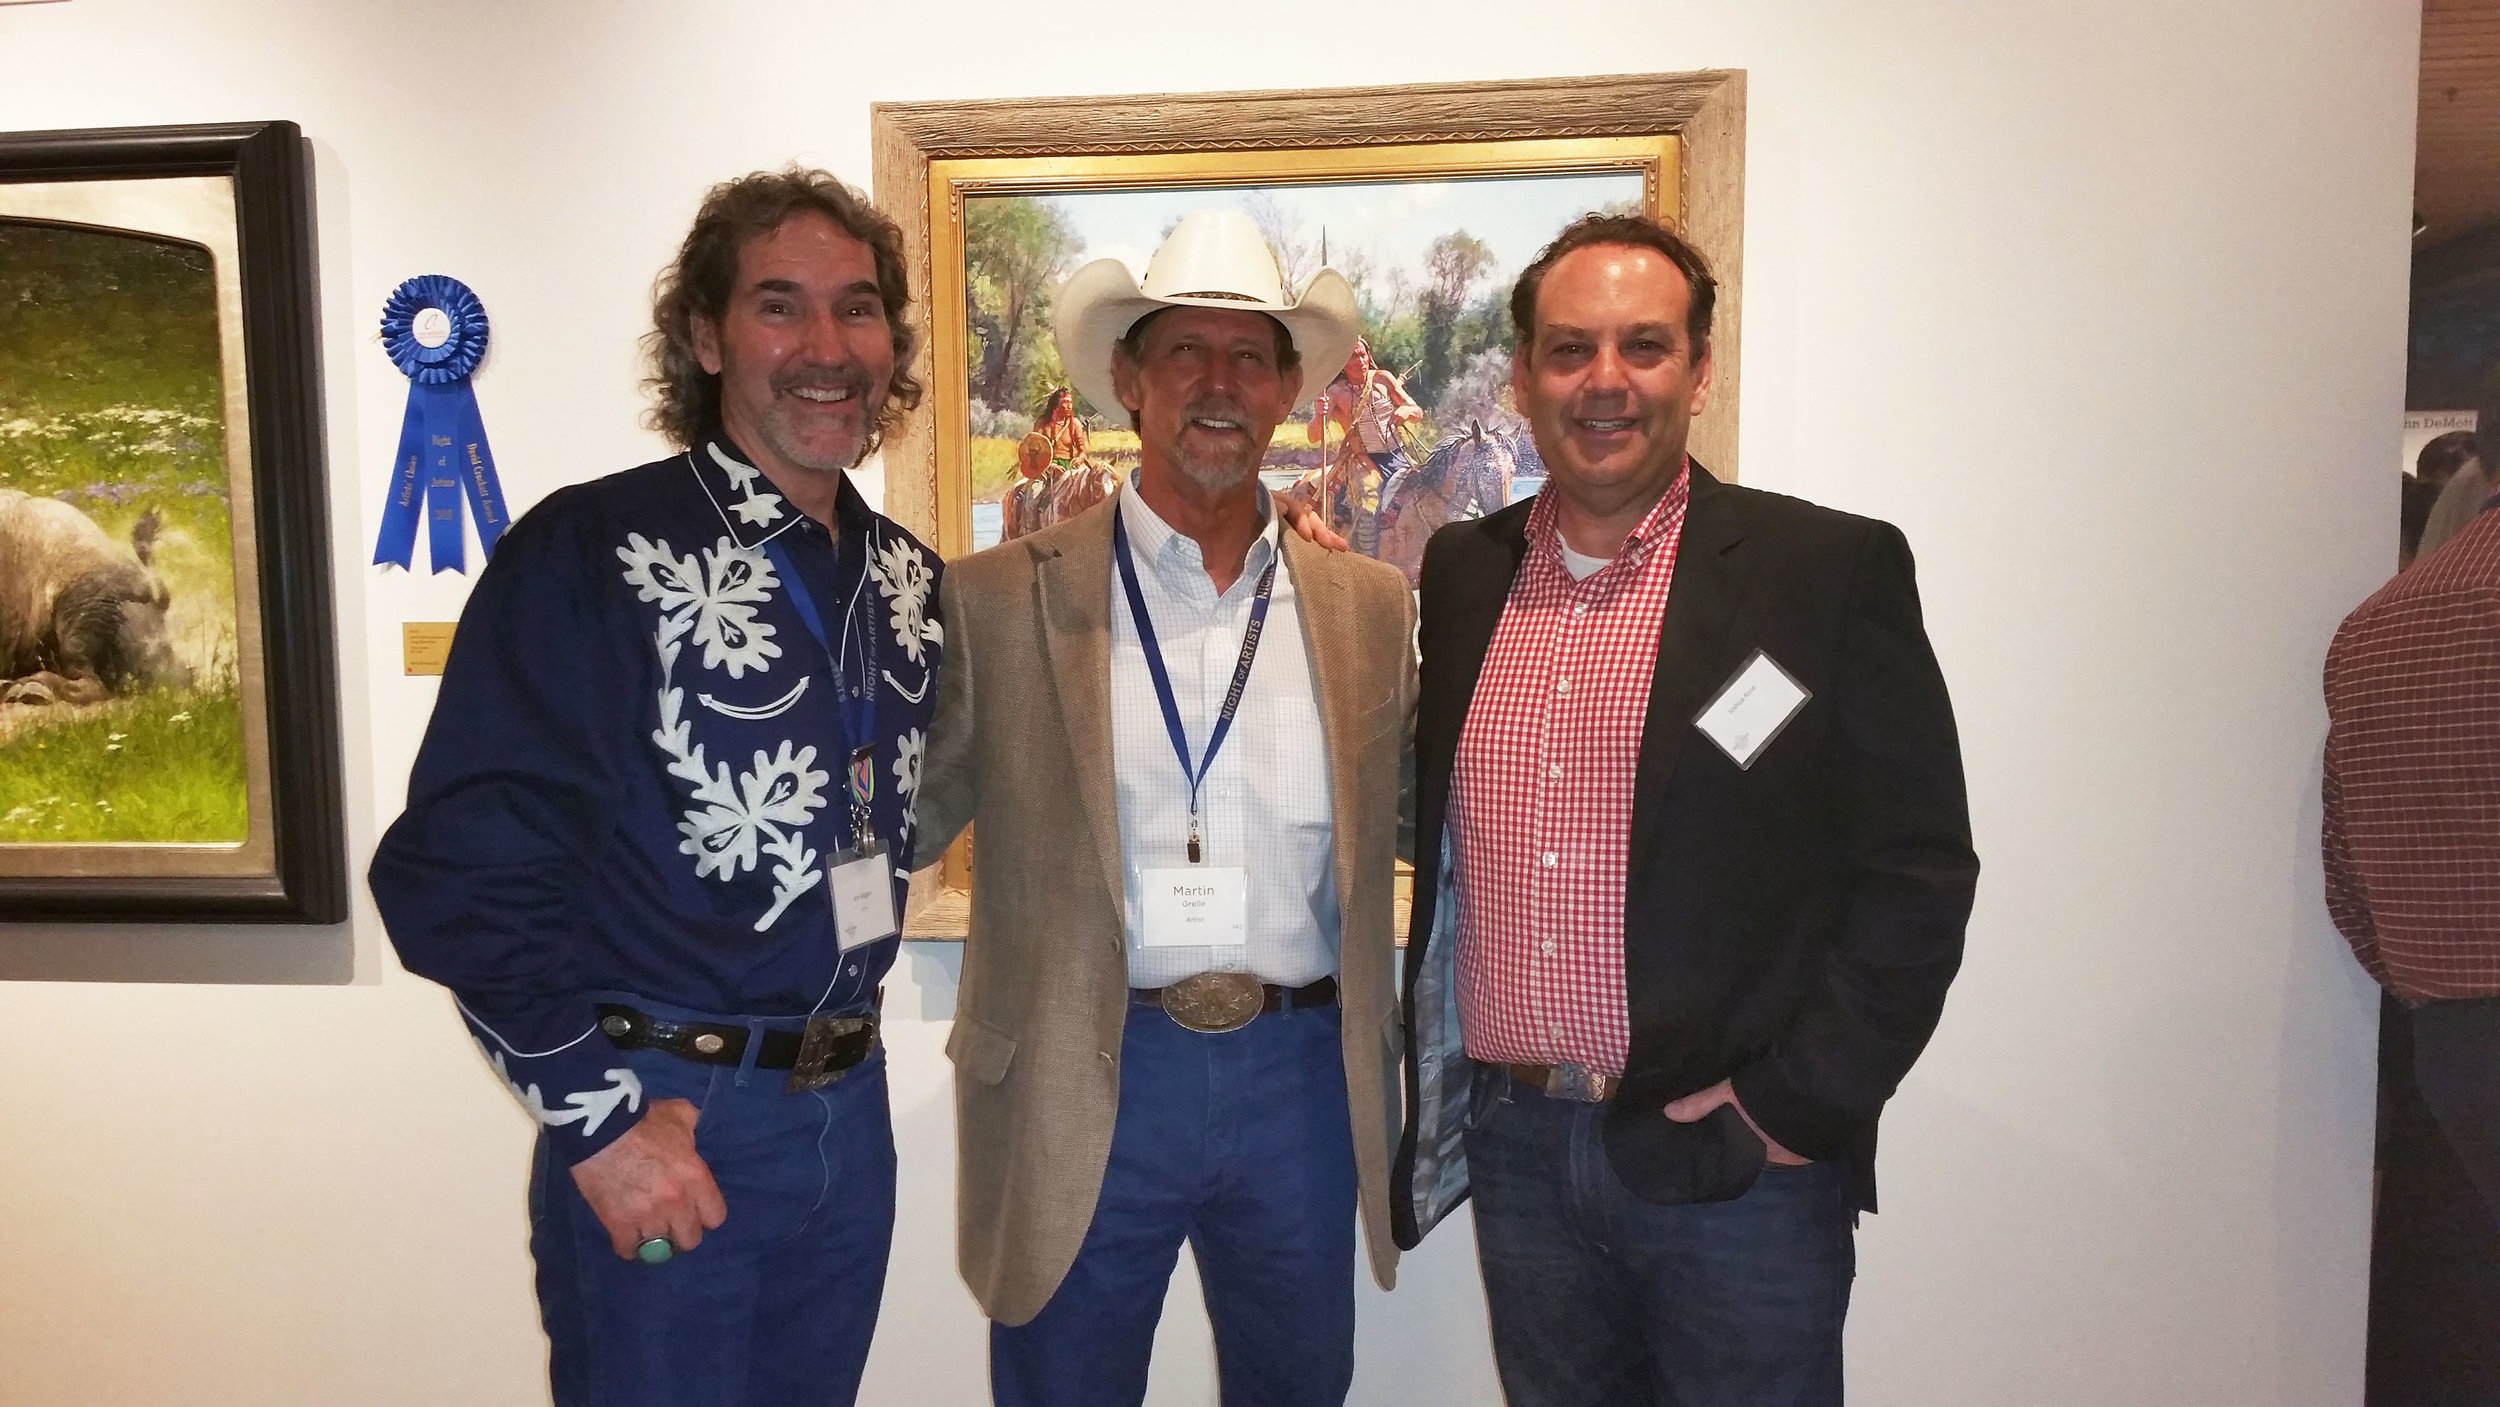 I'm standing with iconic Western artist, Martin Grelle and Joshua Rose, Editor of American Art Collector and Western Art Collector Magazine after the 2018 Briscoe Collector's Summit.